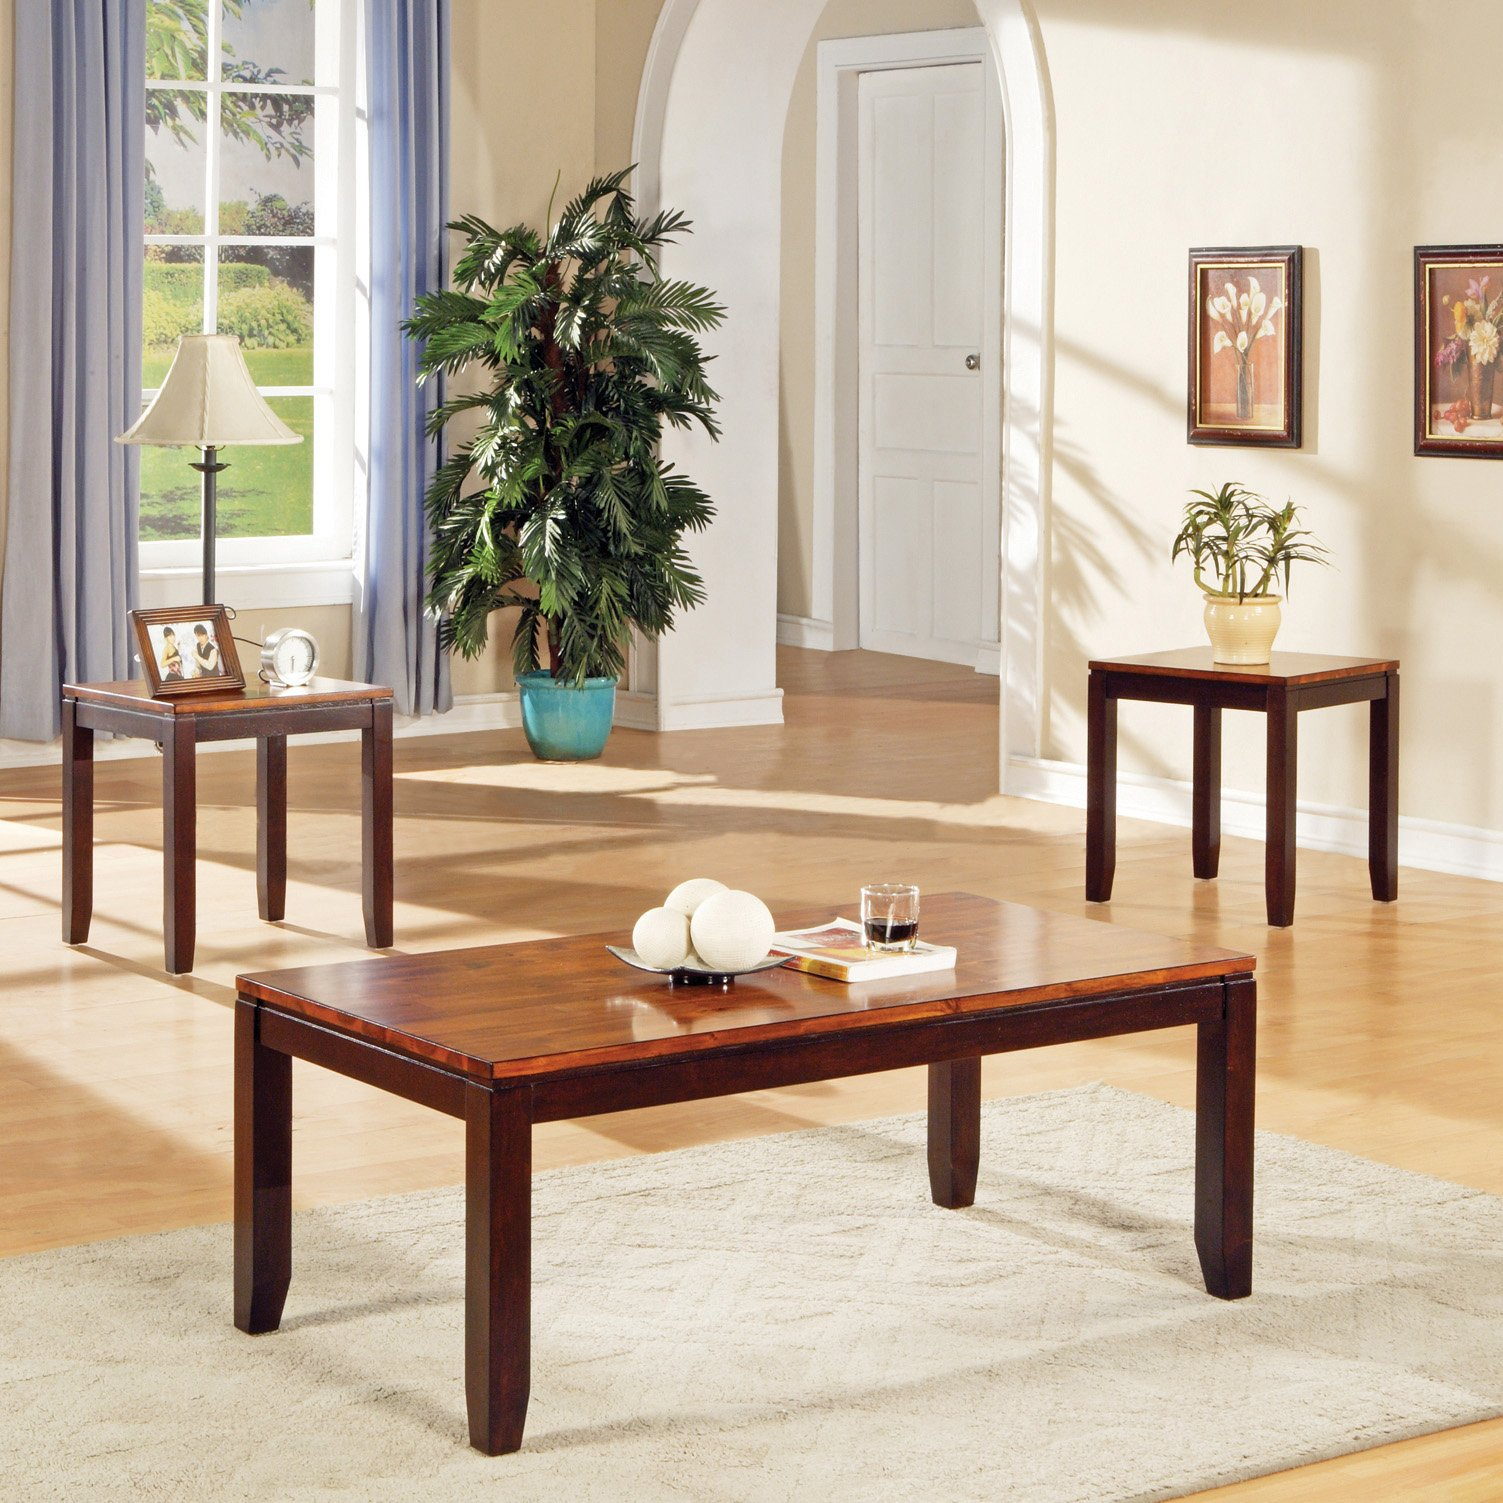 Steve Silver Abaco Coffee Table and End Table Set by Steve Silver Co